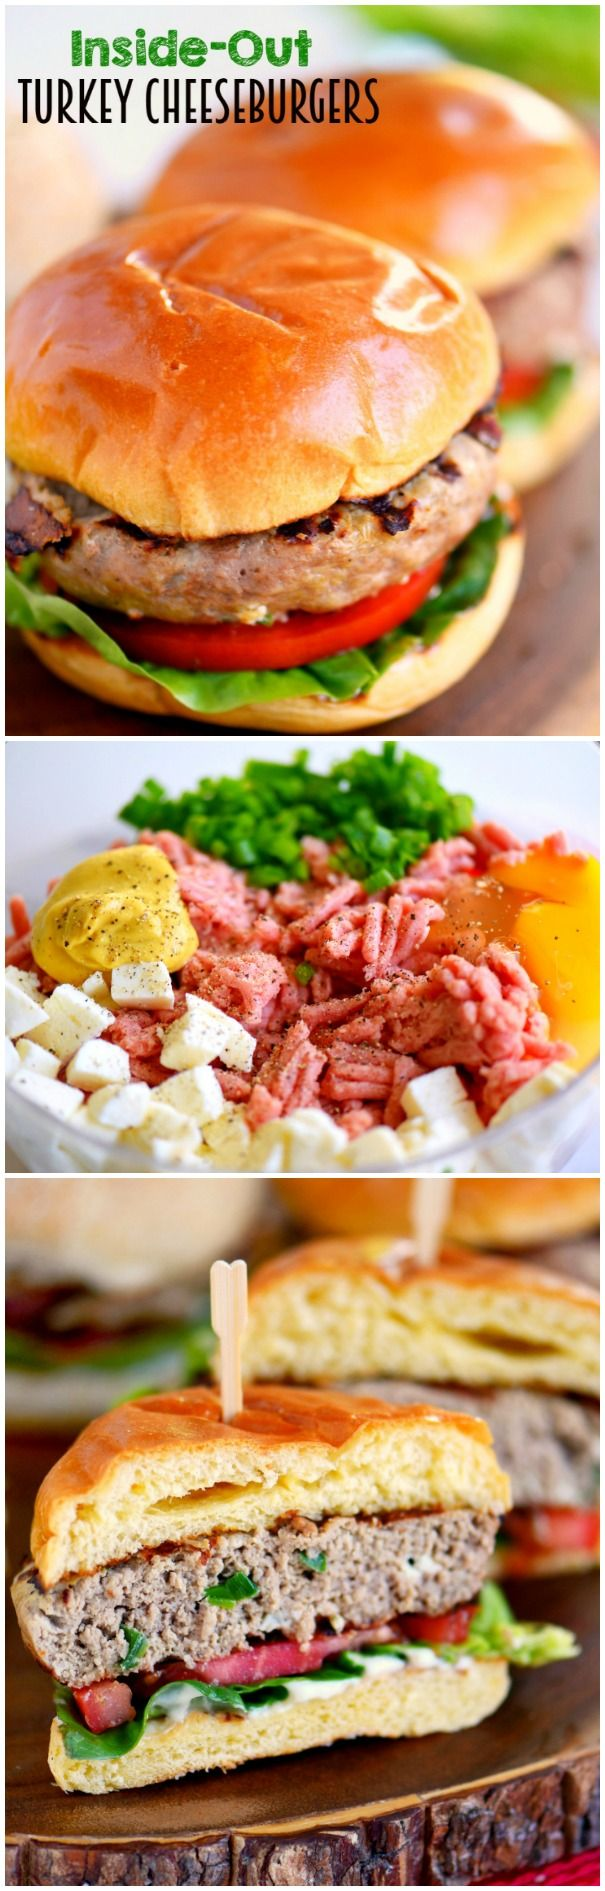 Fire up that grill and throw on these Inside Out Turkey Cheeseburgers! Loaded with flavor and filled with fresh mozzarella cheese, green onions, and Dijon mustard - these easy burgers are going to light up your 4th of July celebration! #ad